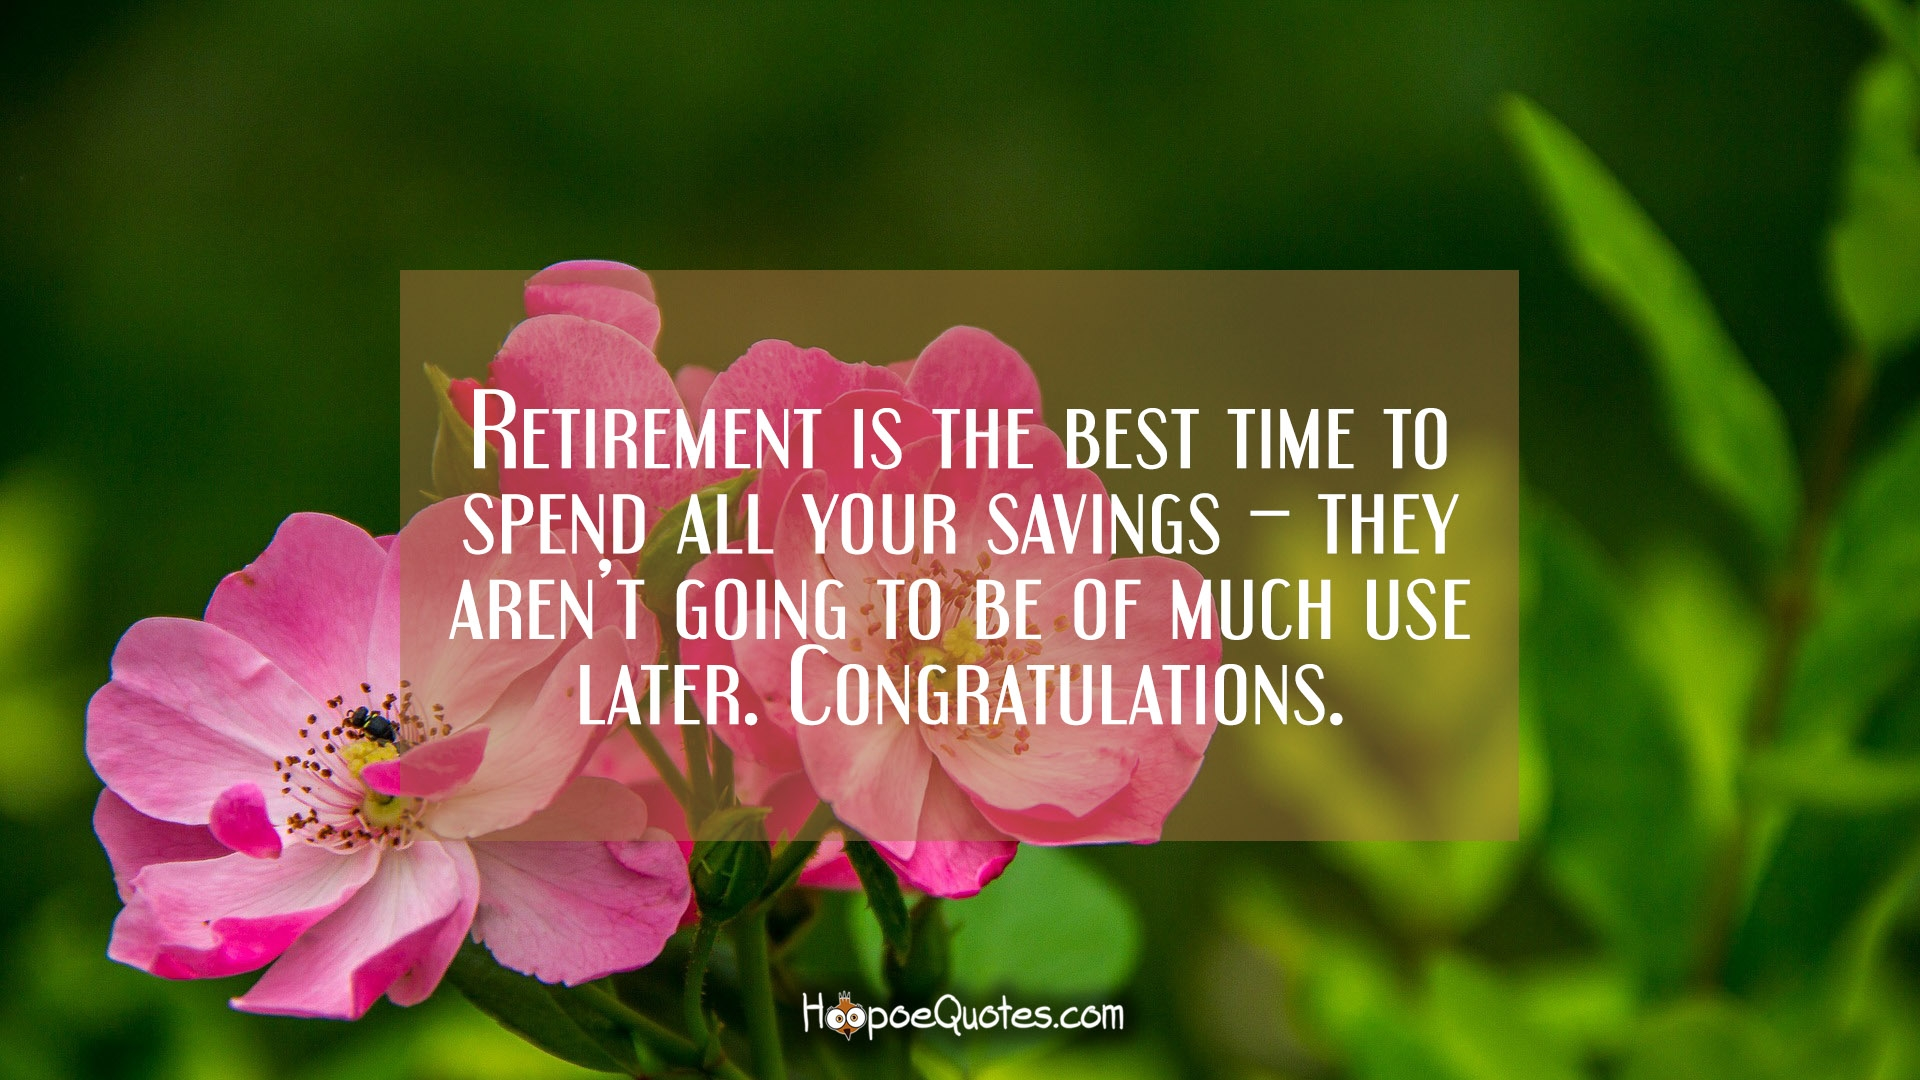 Retirement Is The Best Time To Spend All Your Savings They Arent Going To Be Of Much Use